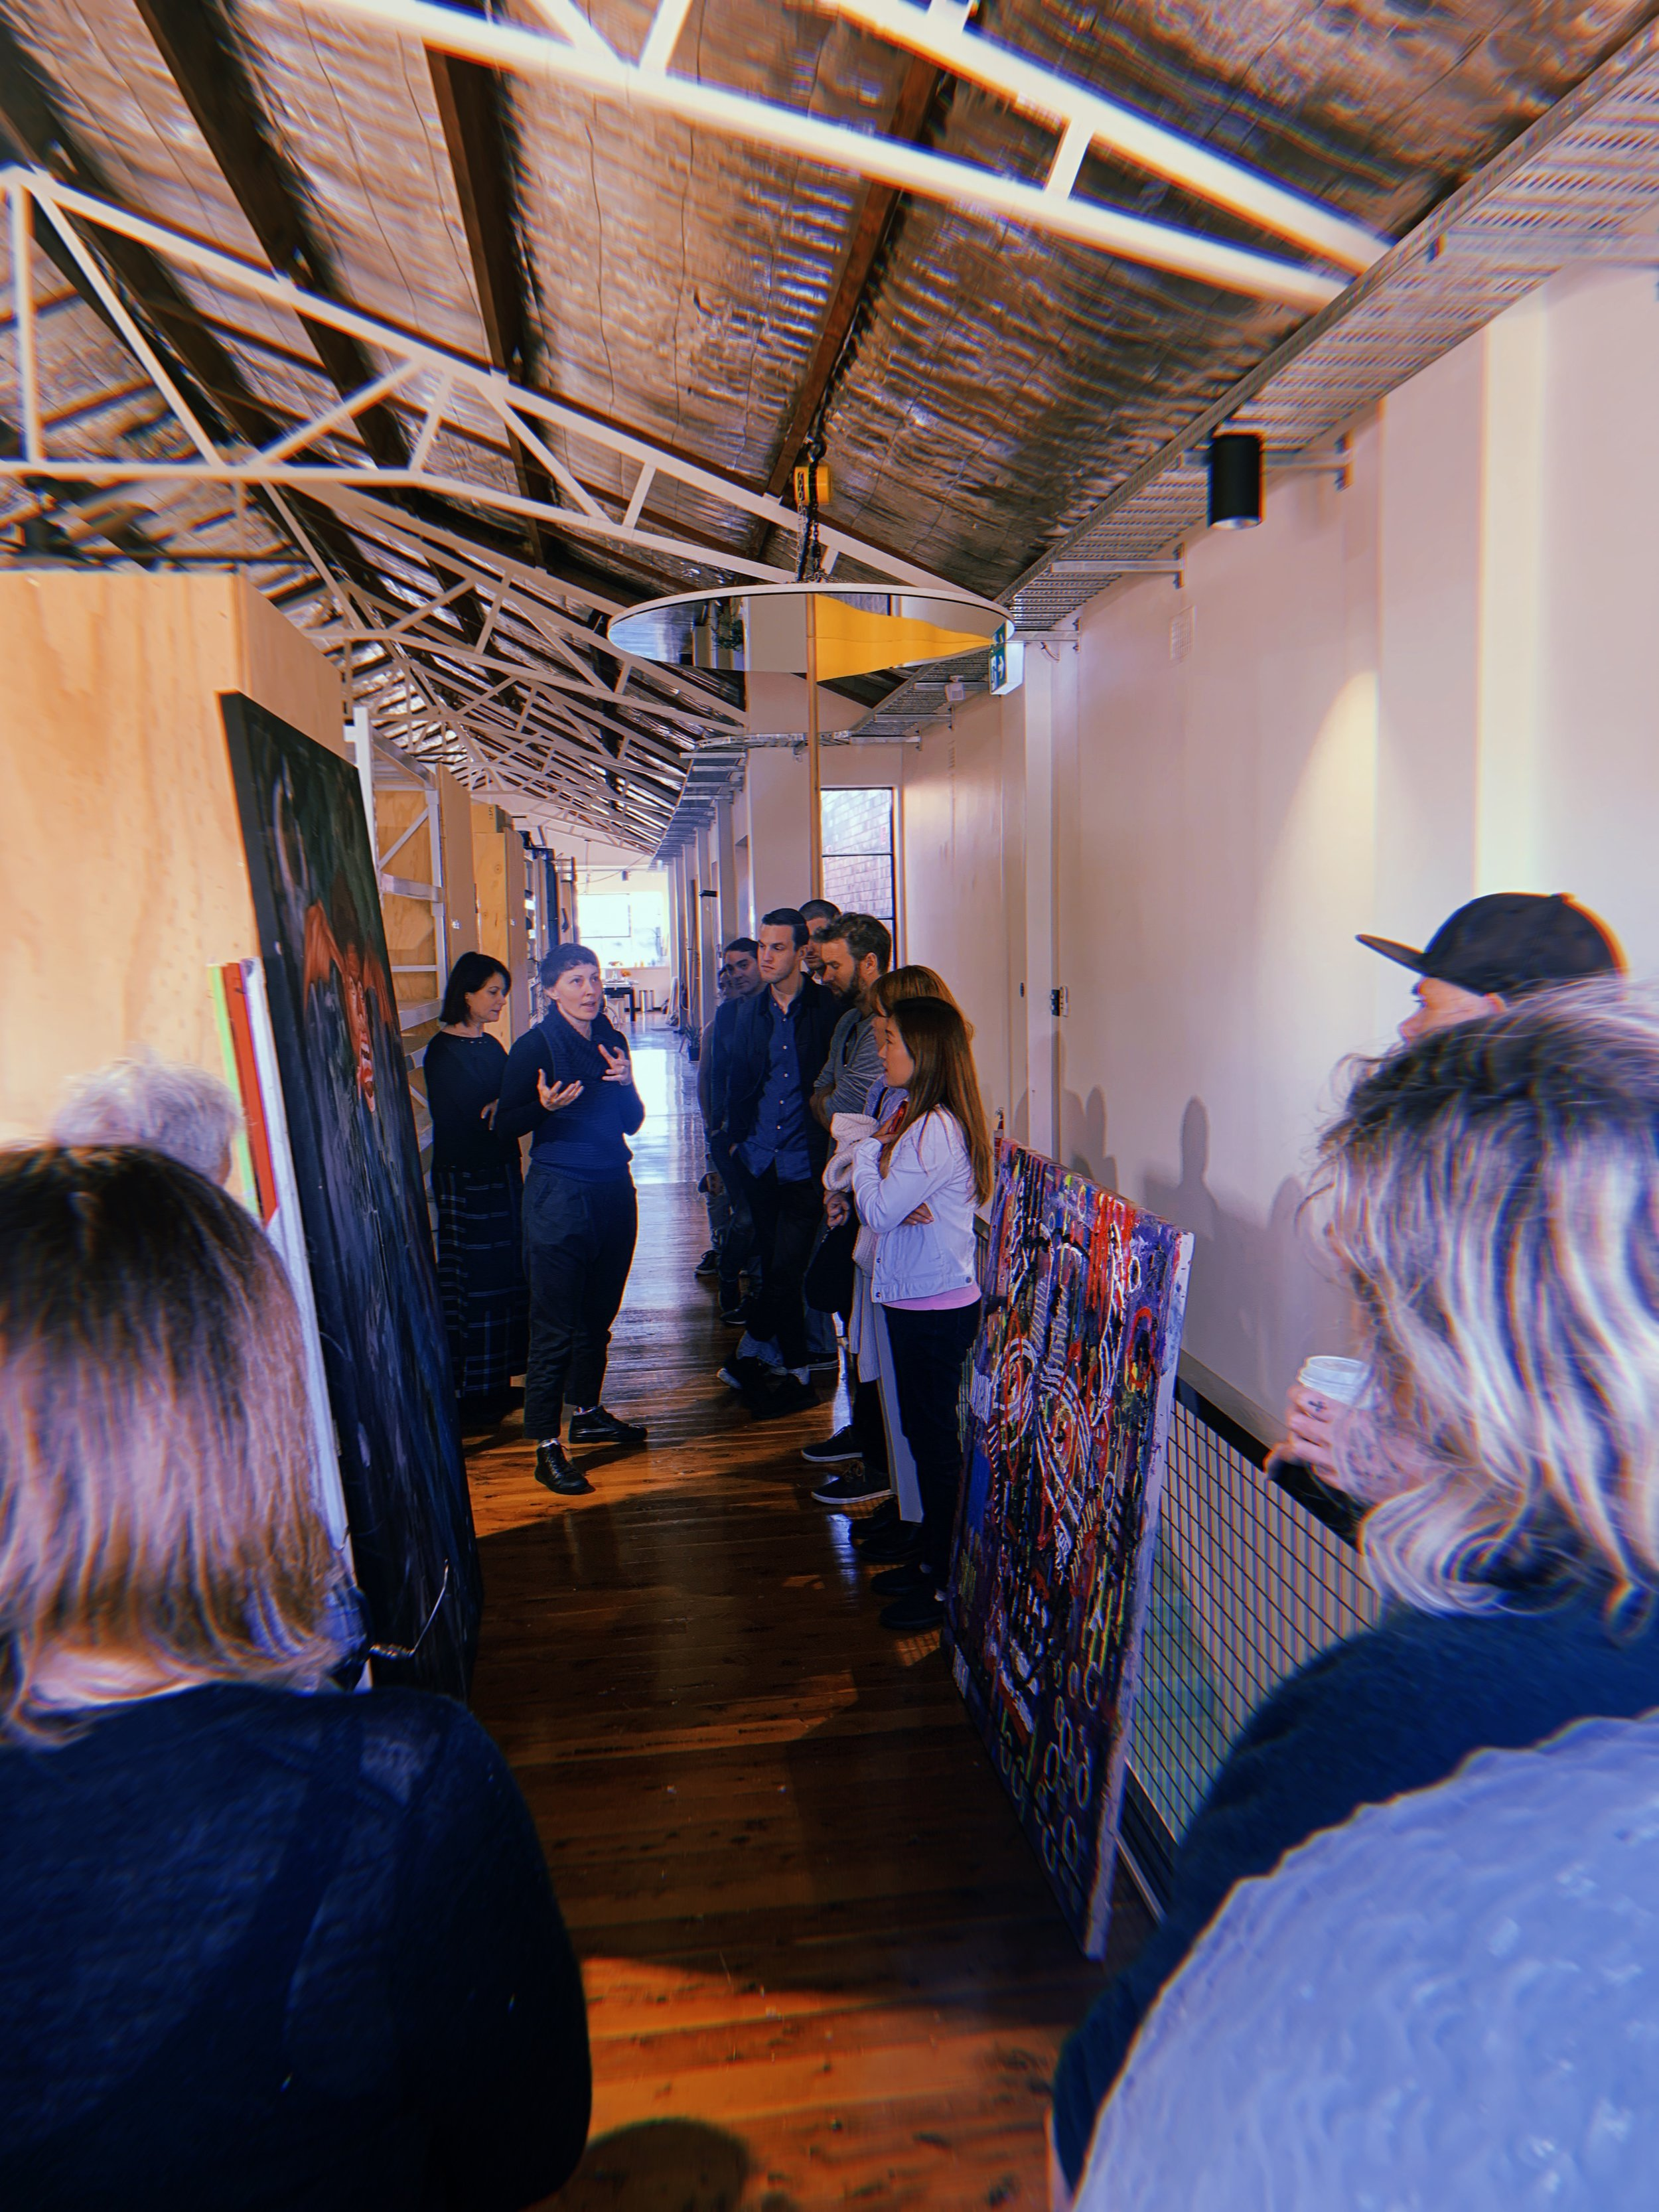 SHIRLOW ST STUDIOS-Open Day May 2019_Photo Mariam Arcilla_2019-05-04 12_10_25.832.JPG